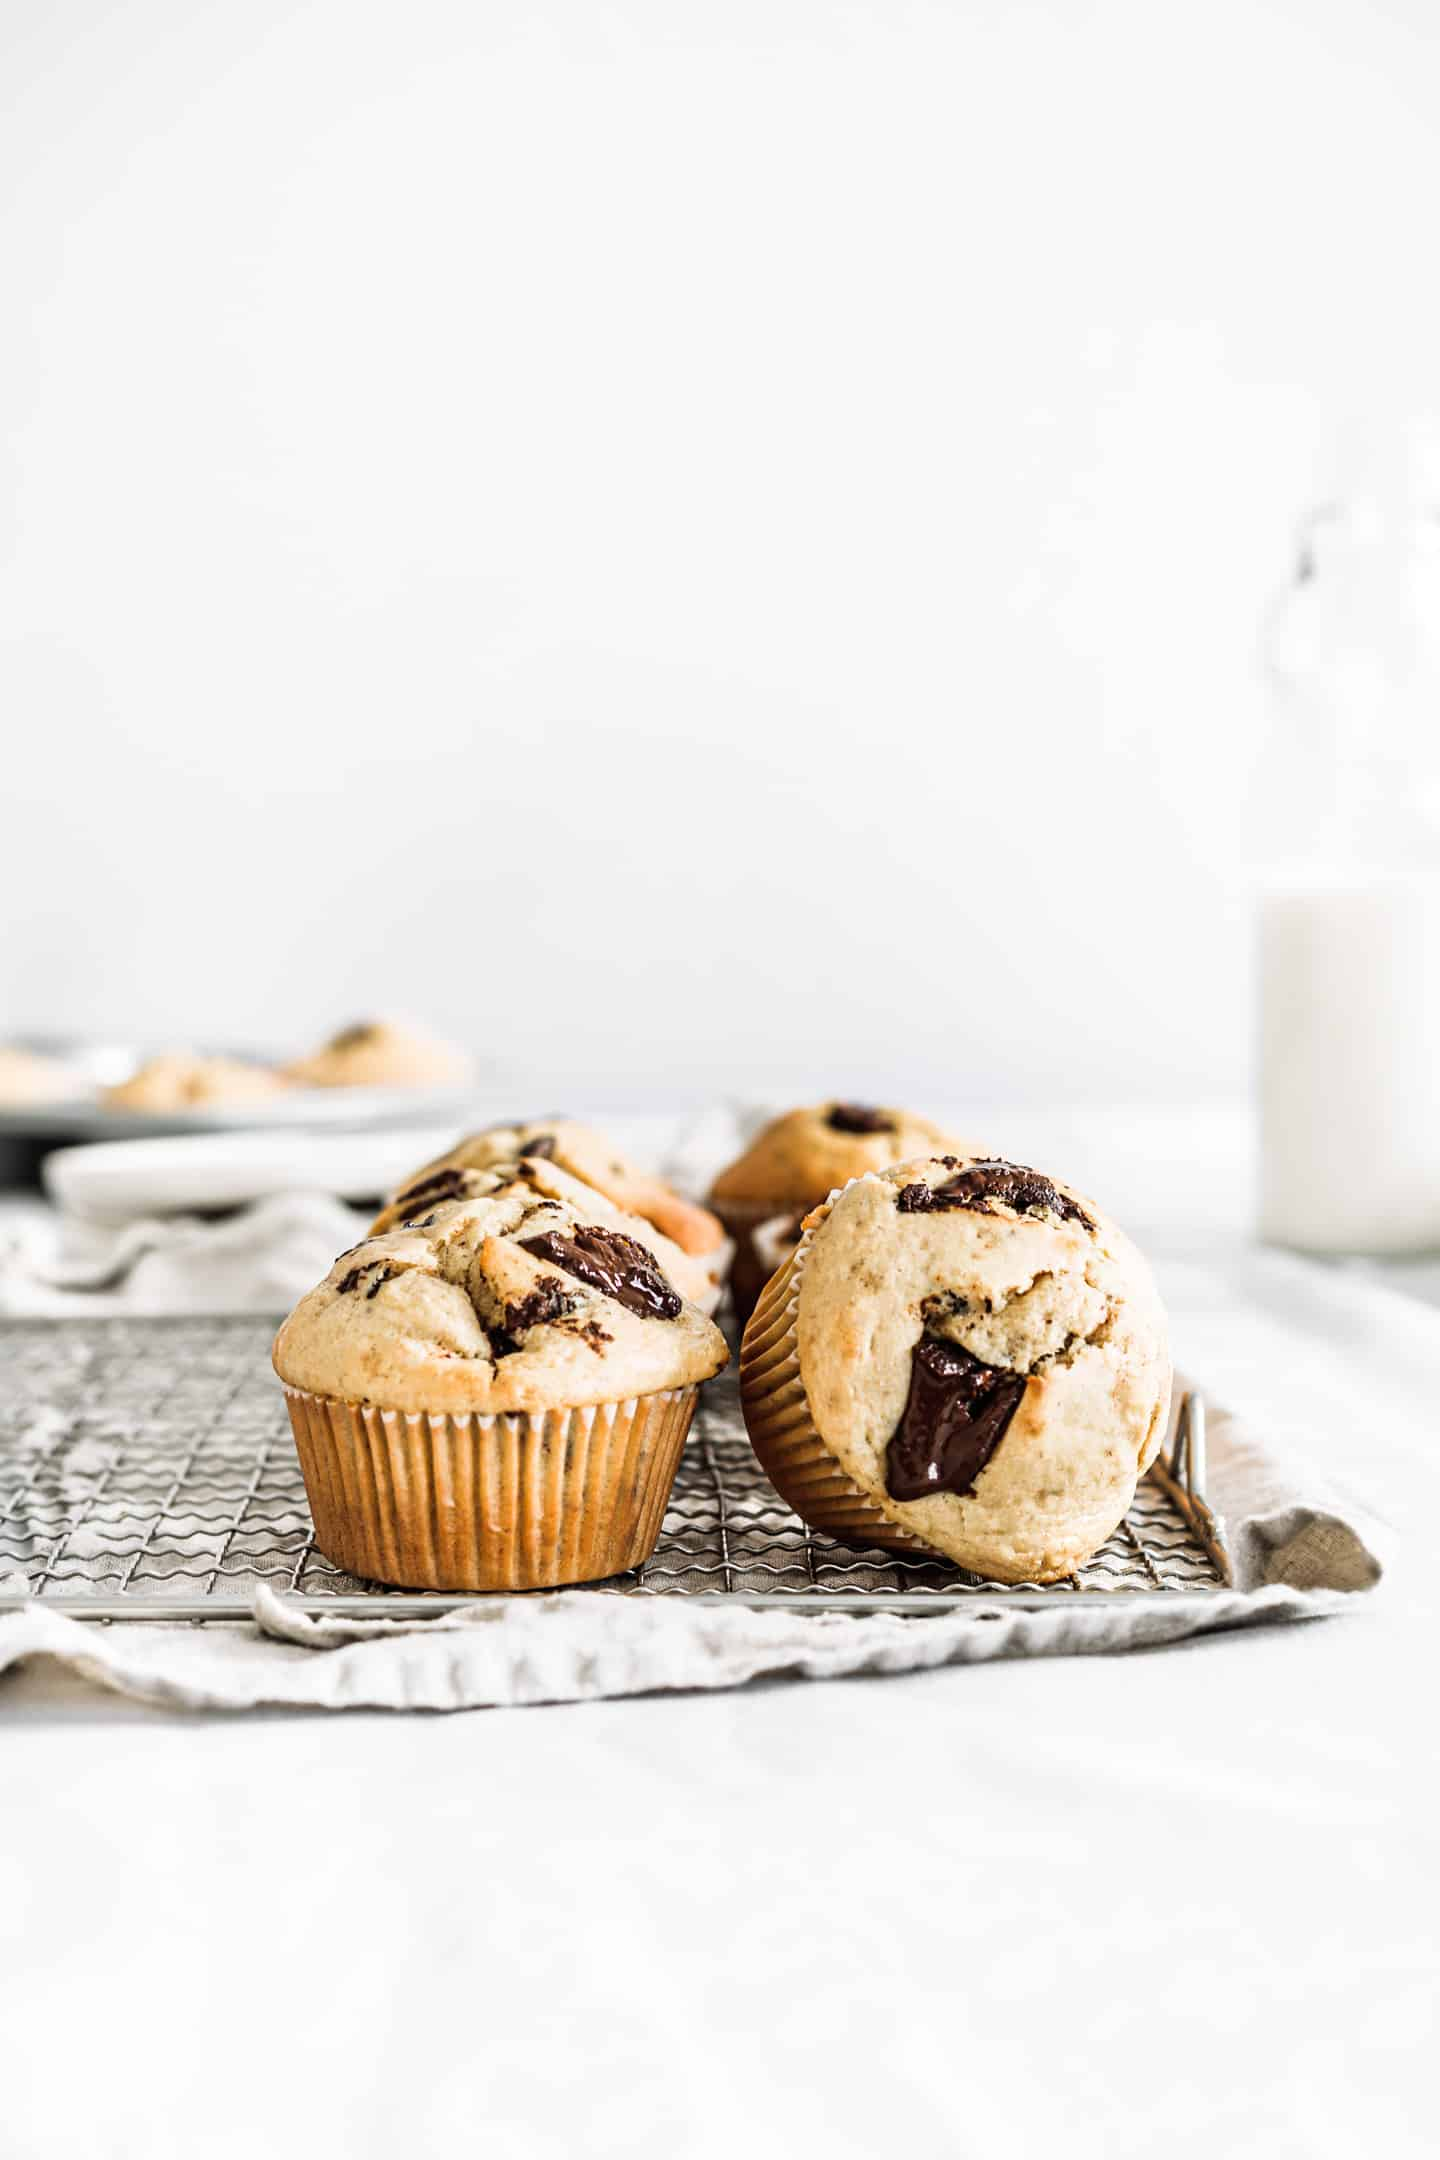 Easy chocolate chip muffins recipe